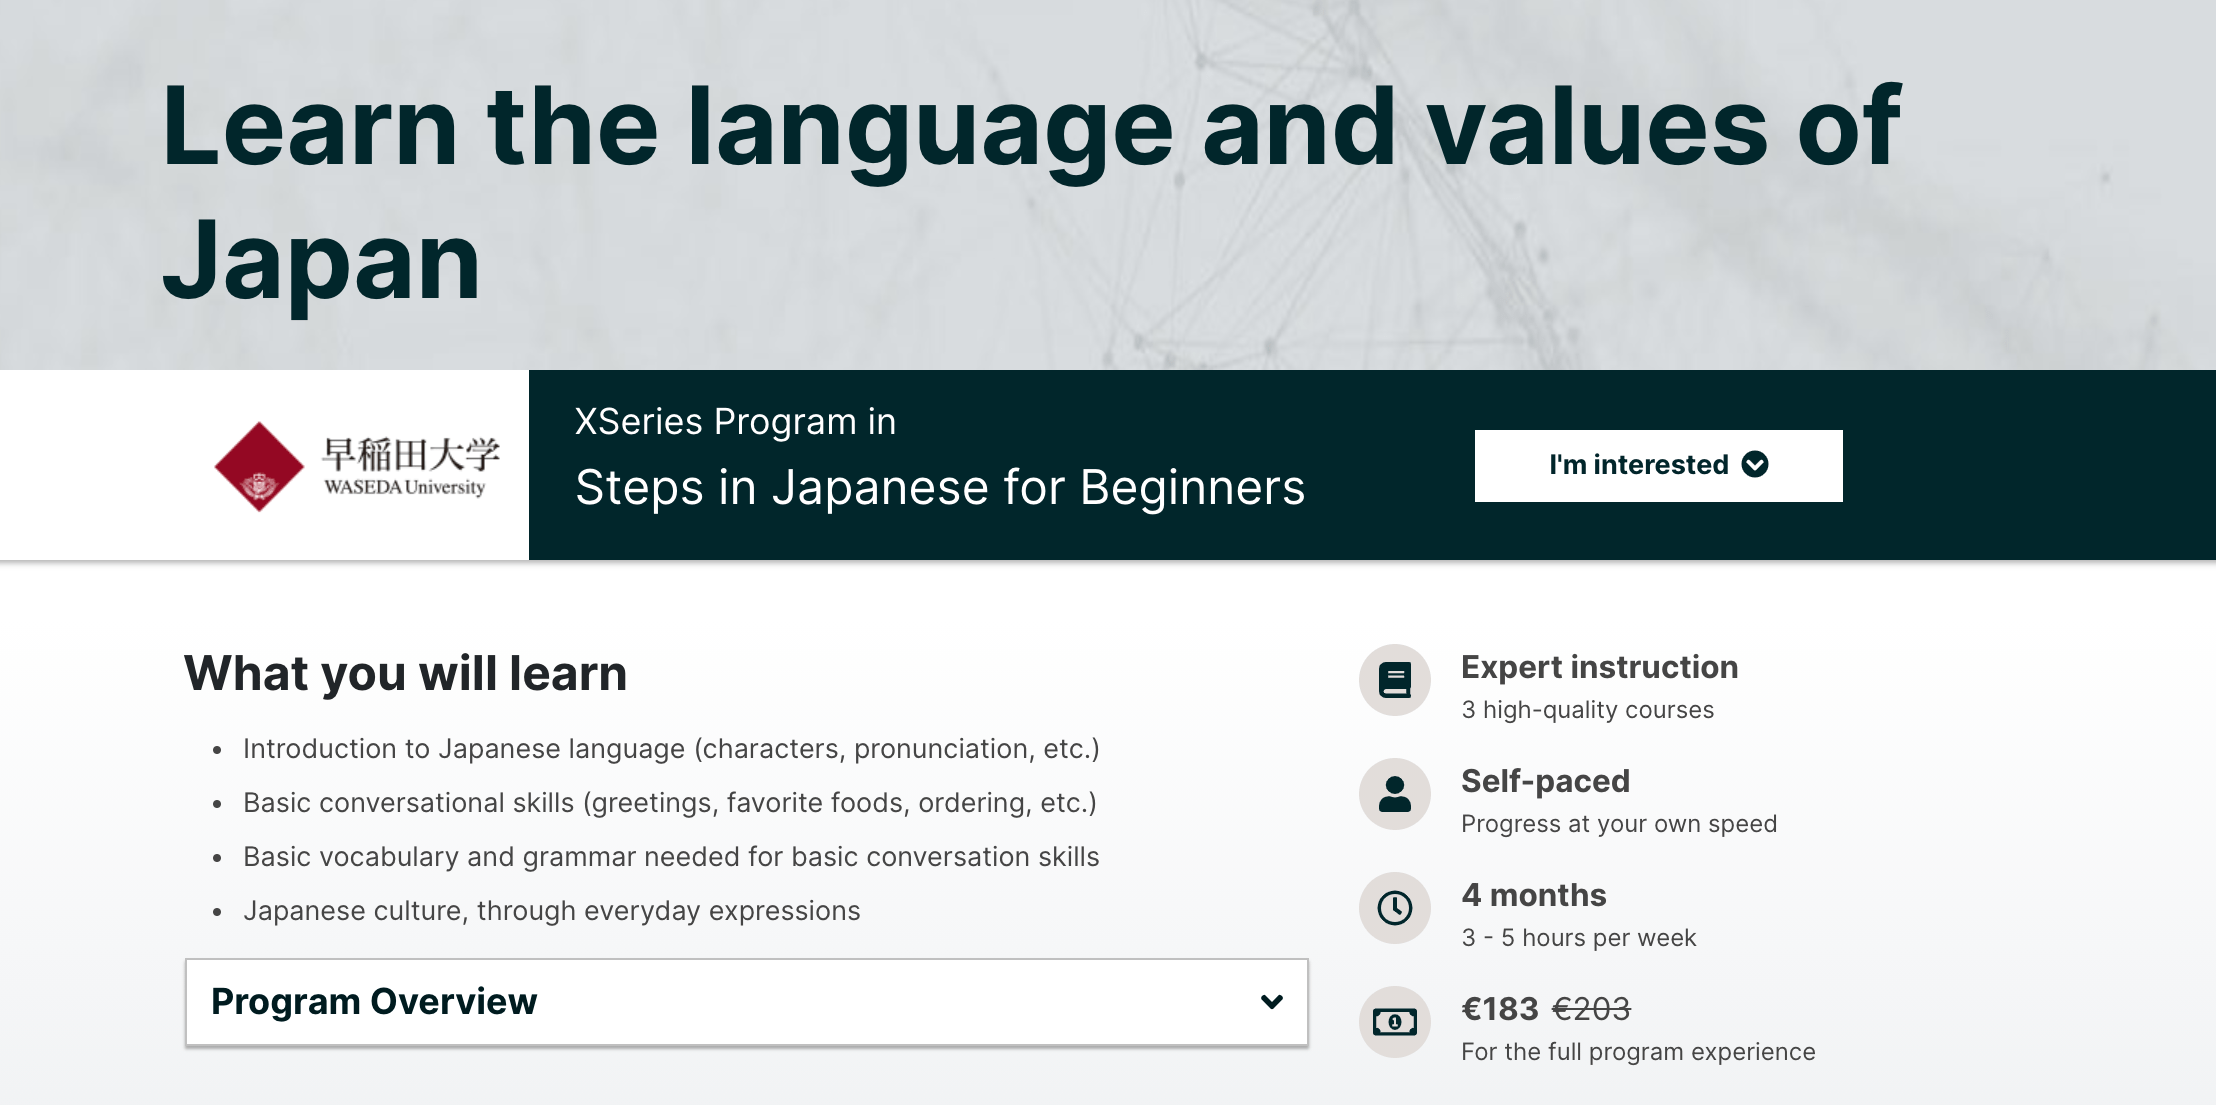 Steps-in-Japanese-for-Beginners-XSeries-Program-edX